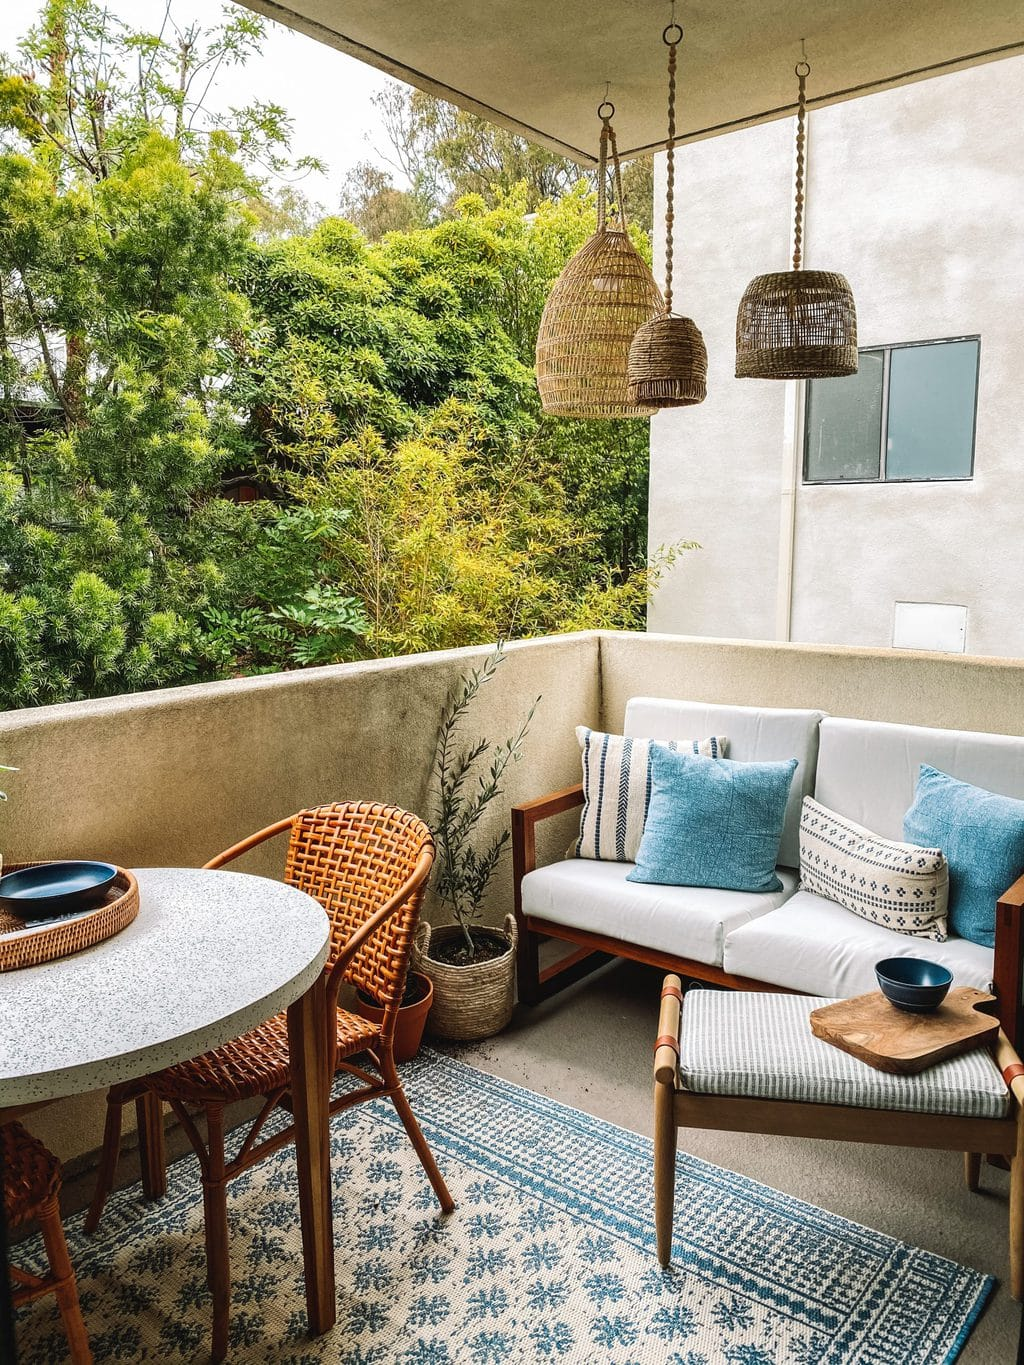 Lounge side of a patio makeover with basket lanterns, a love seat and foot stool.